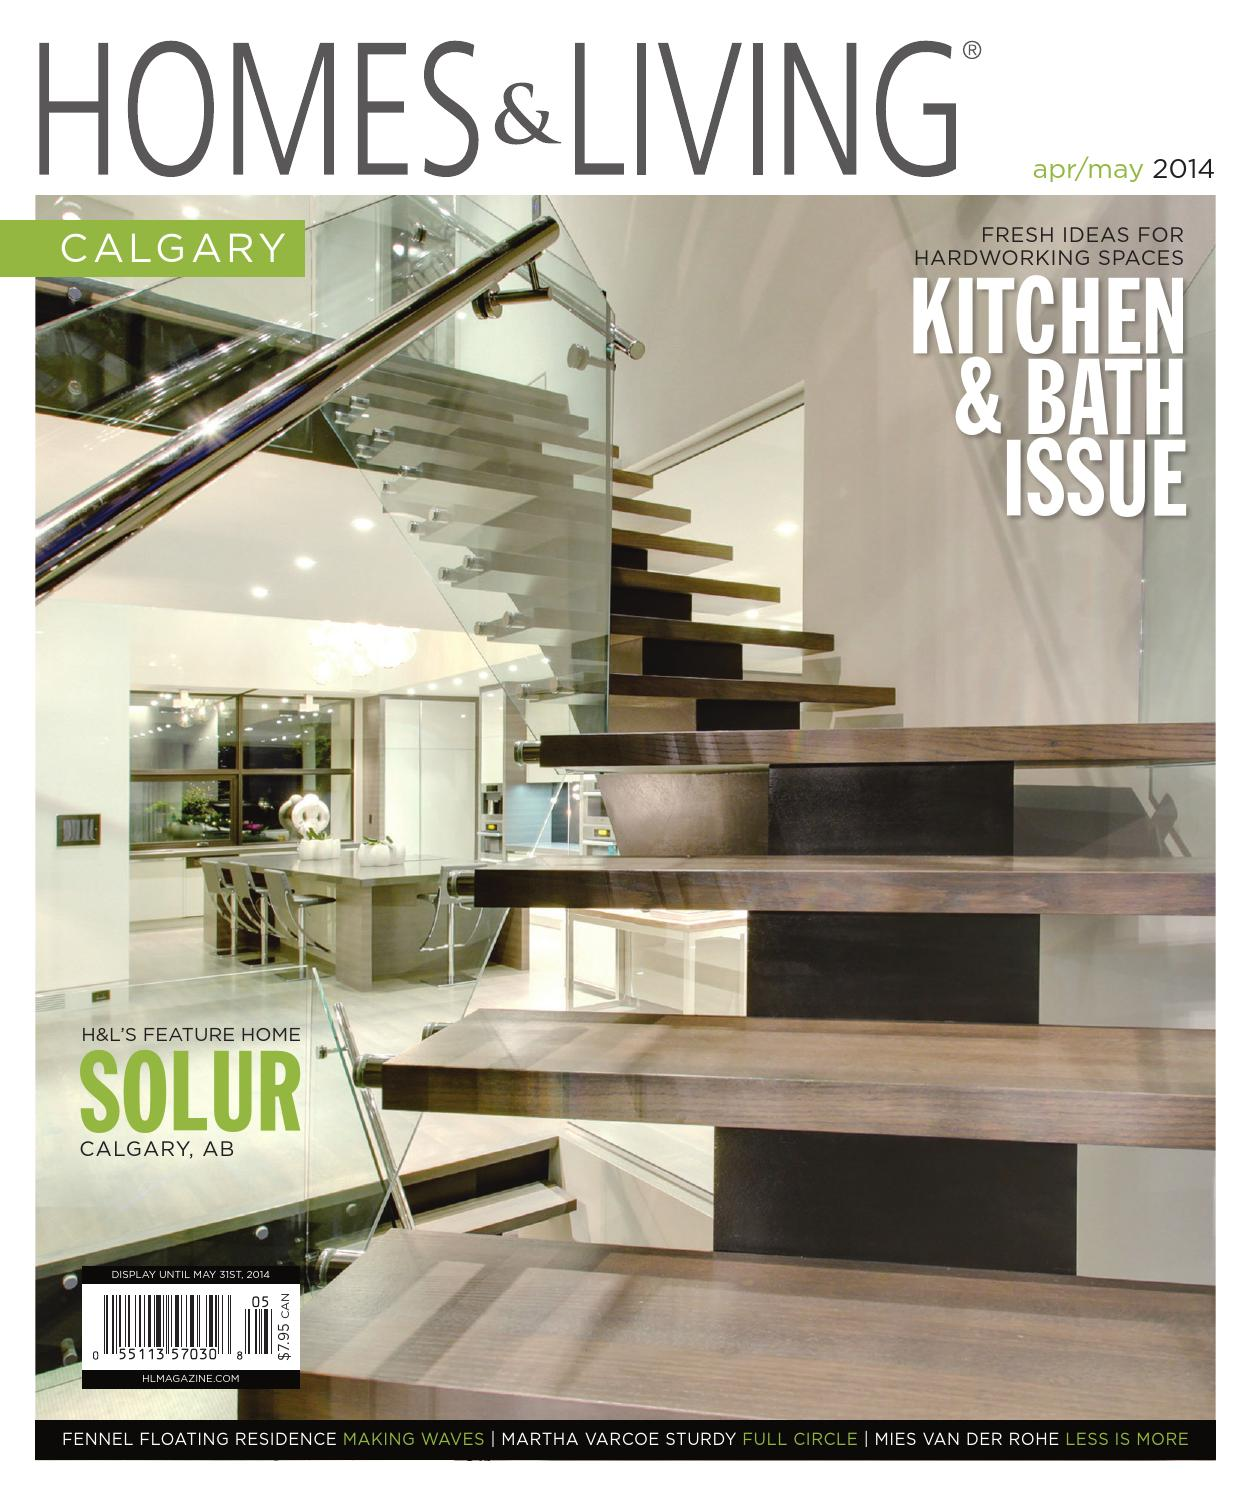 homes living magazine calgary april may 2014 teaser by homes living magazine issuu. Black Bedroom Furniture Sets. Home Design Ideas